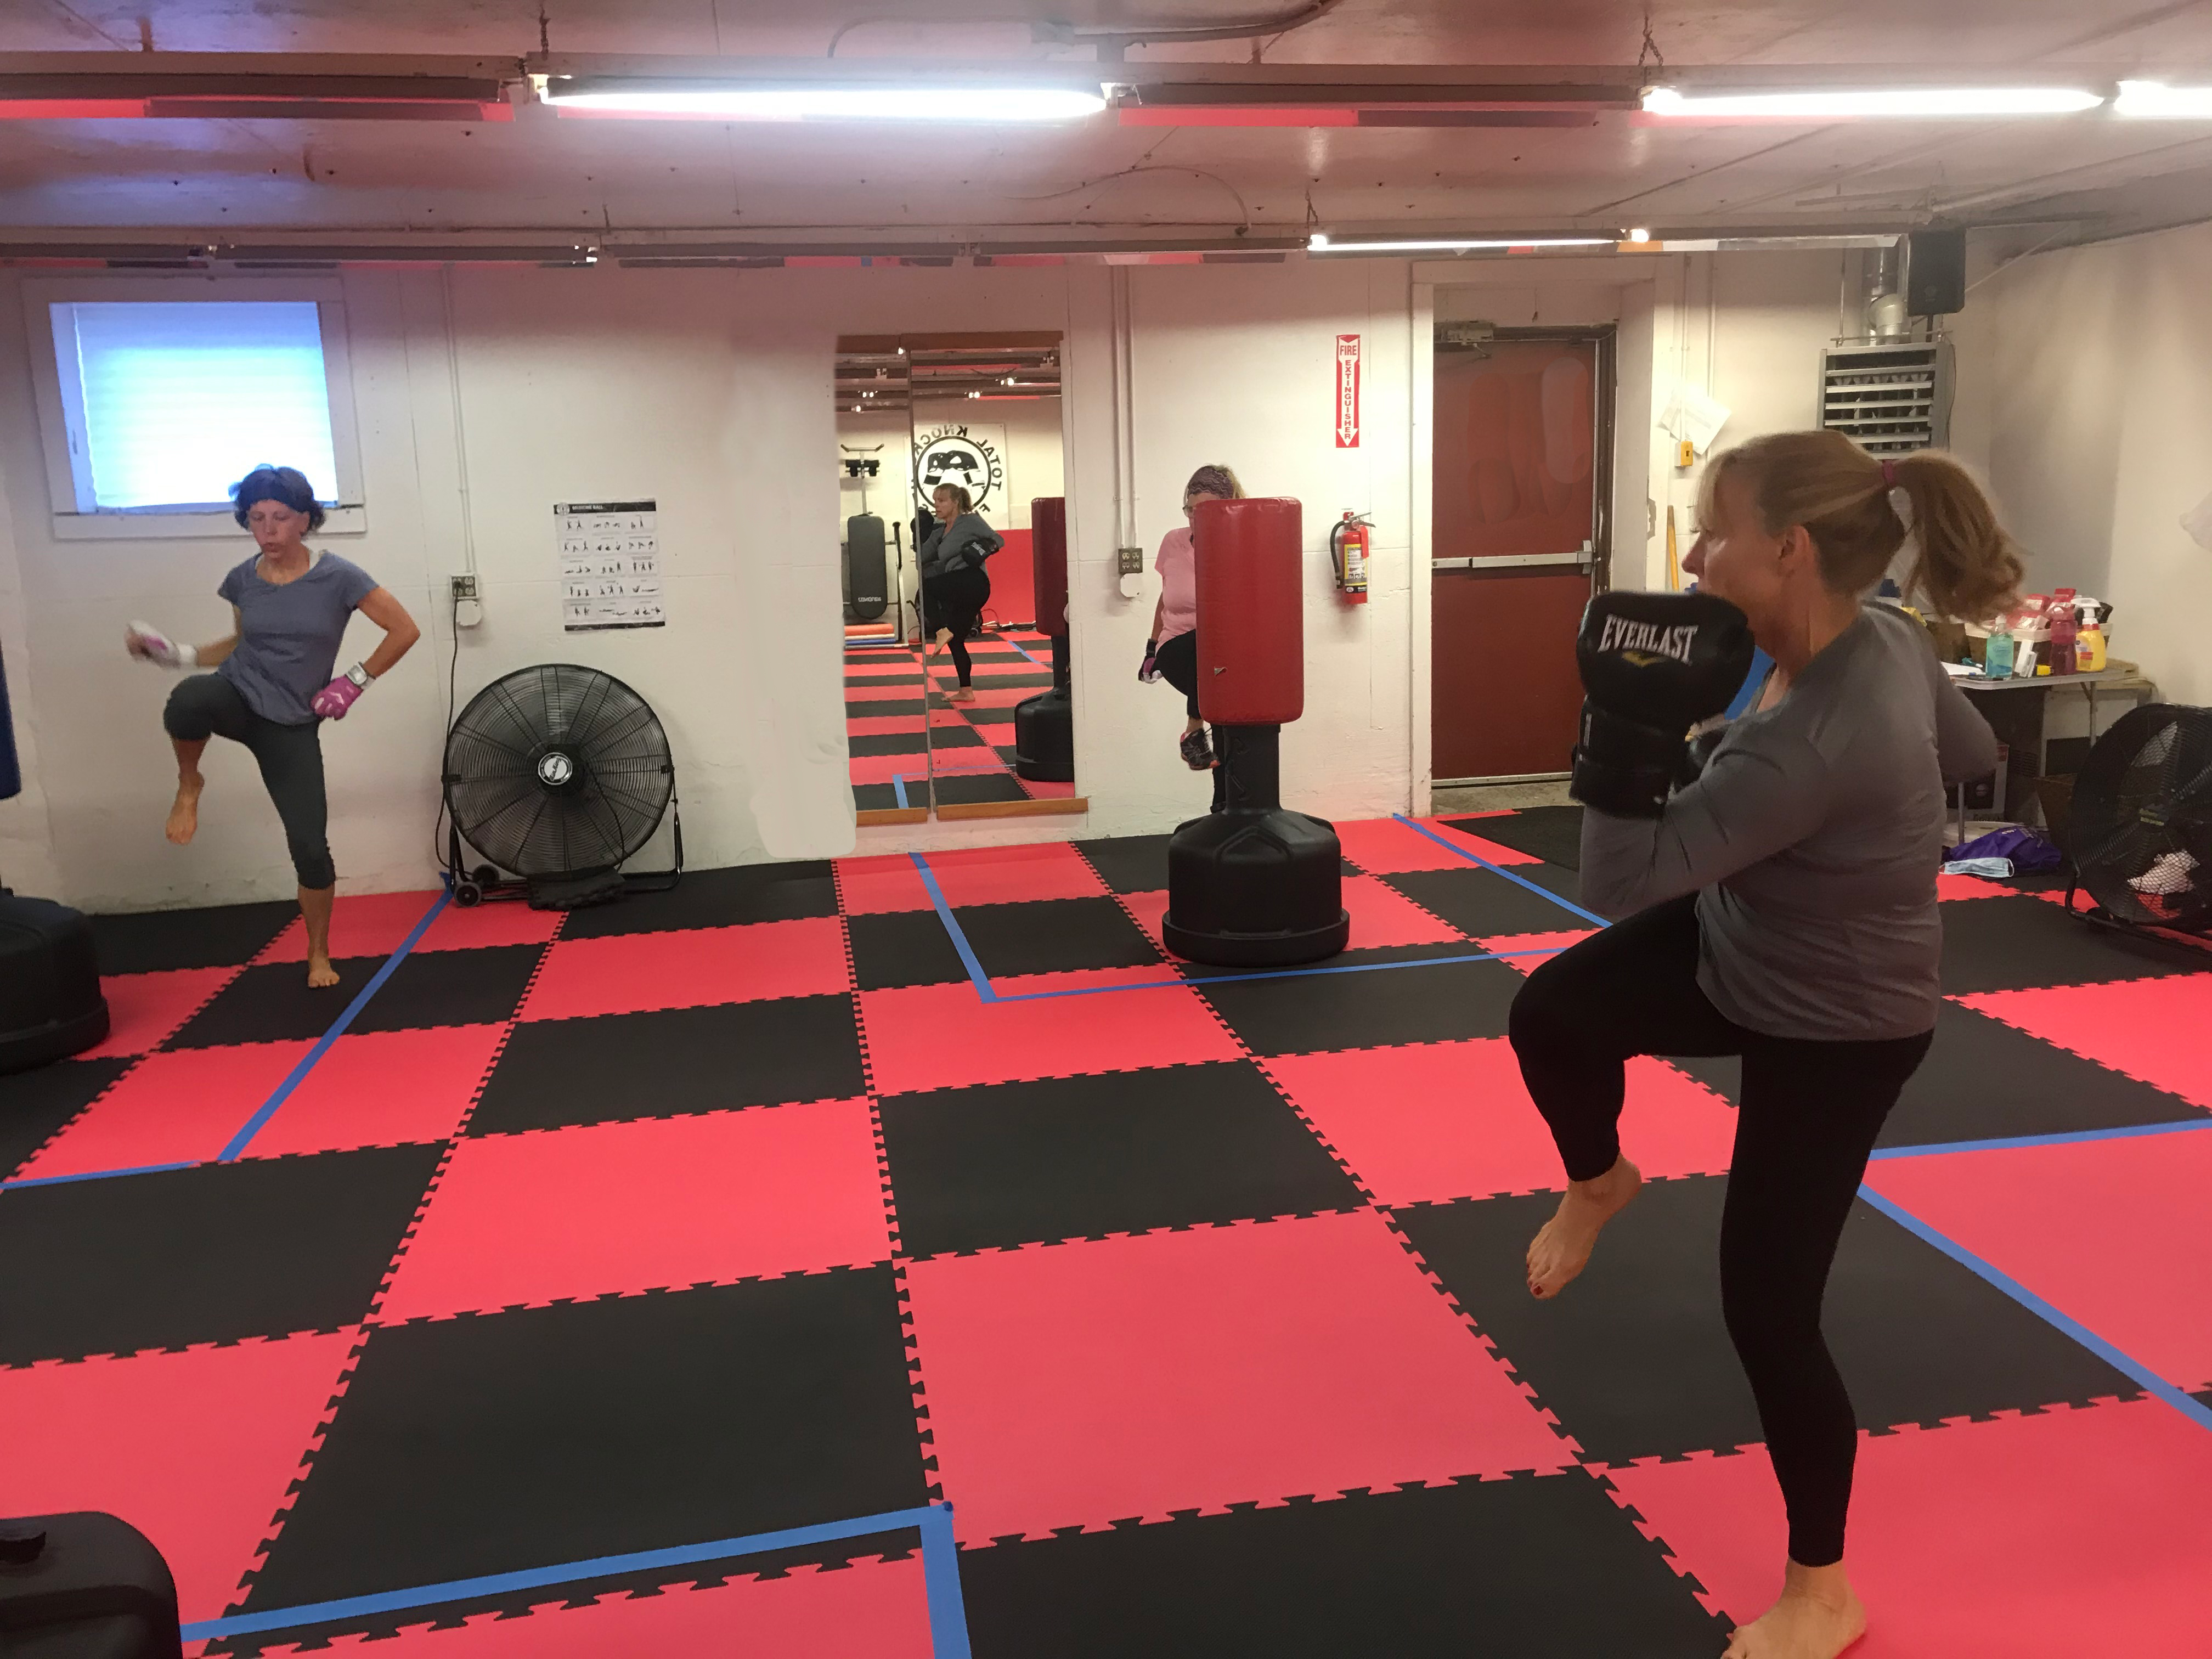 two women exercising with gloves on as part of kickboxing